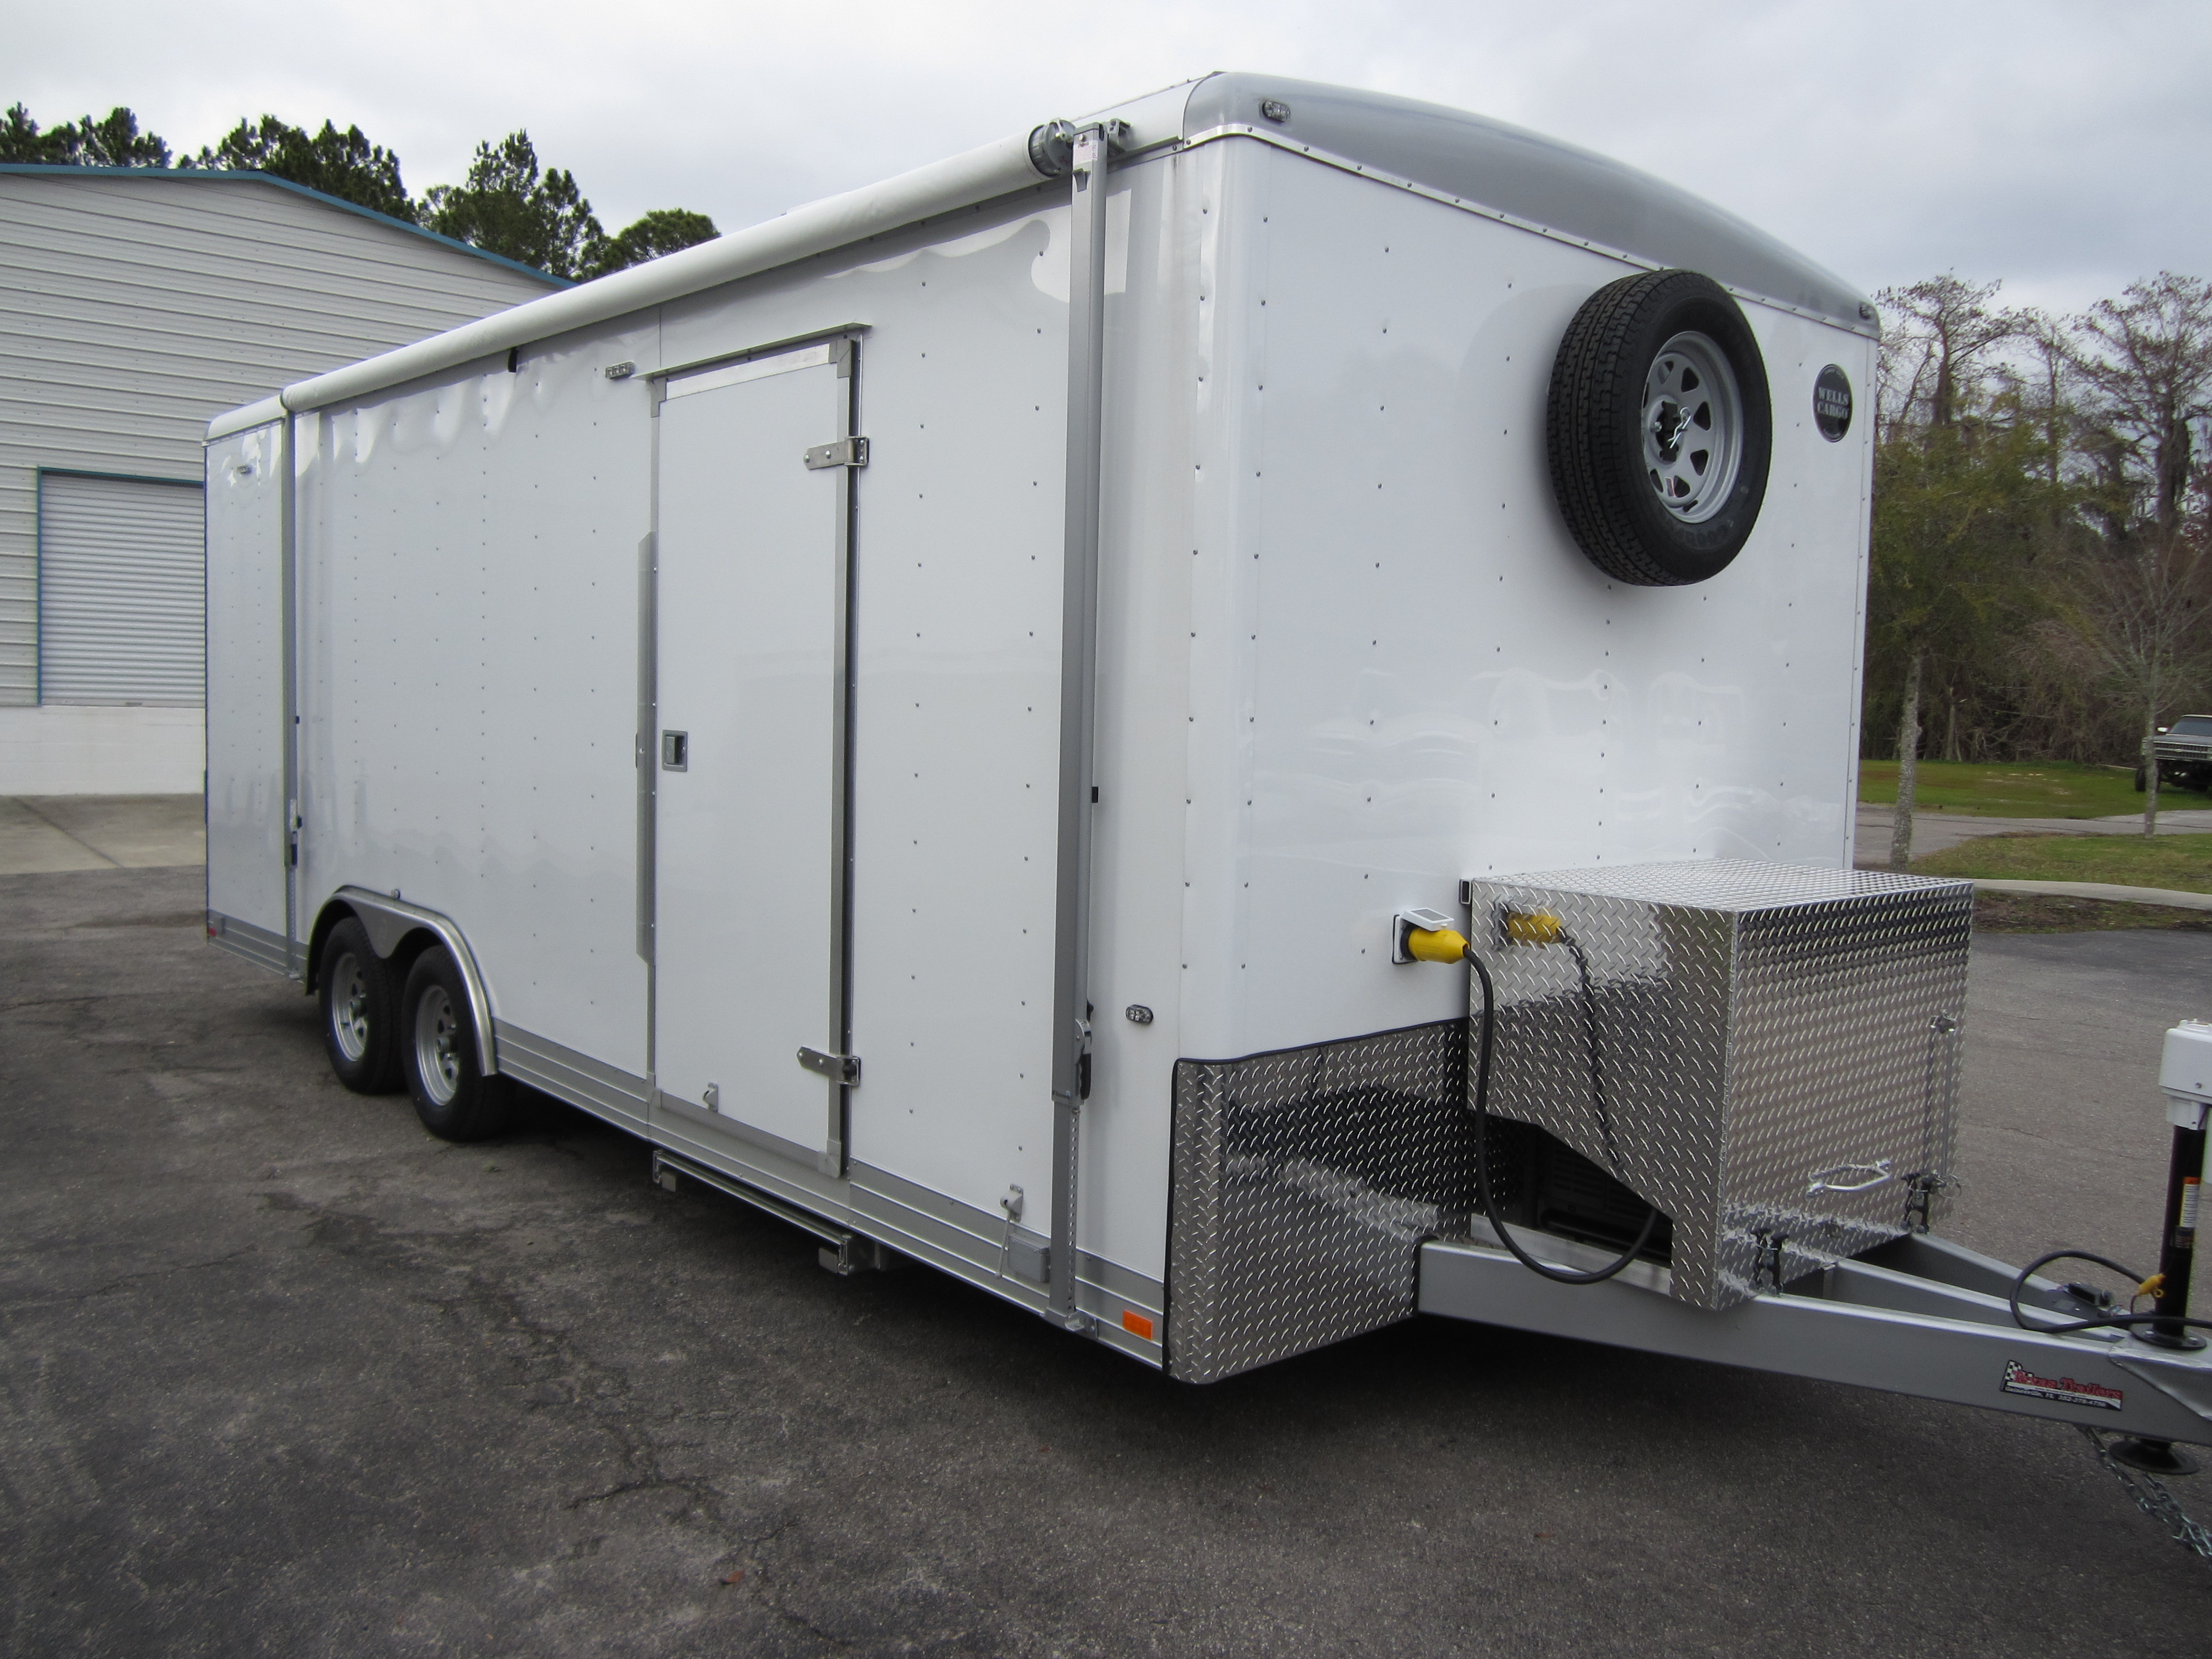 img nuthouse trailers awning aluminum awnings sport expedition off horse trailer multi shop industries road peanut